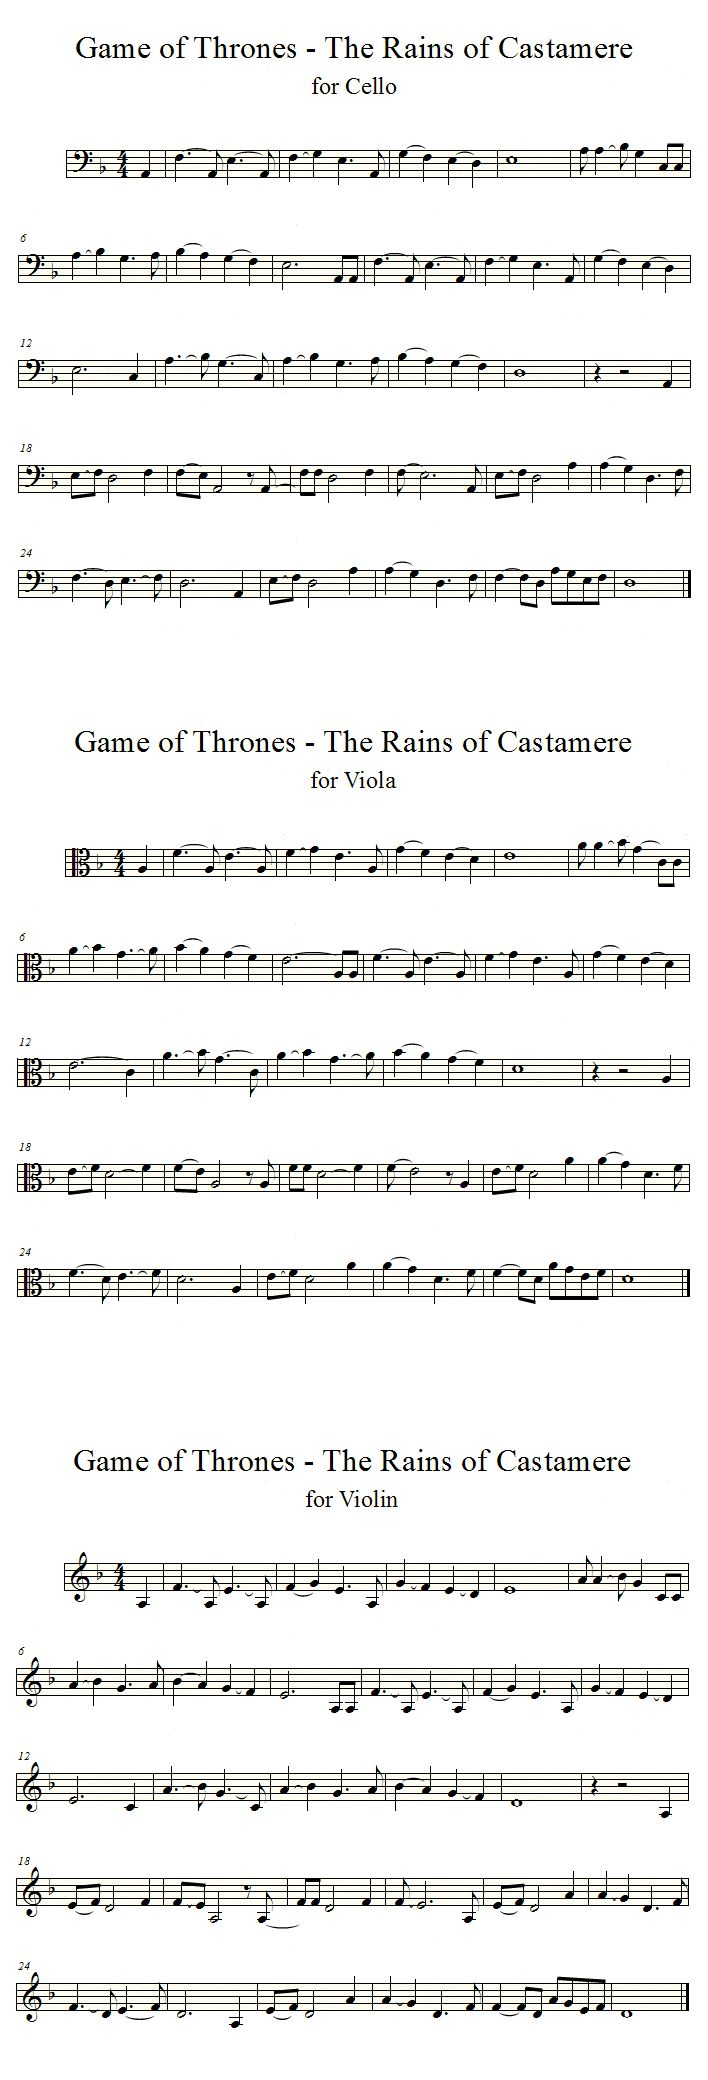 Rains of Castamere - GoT | Cello, Violin, Viola by averoxot.deviantart.com on @deviantART